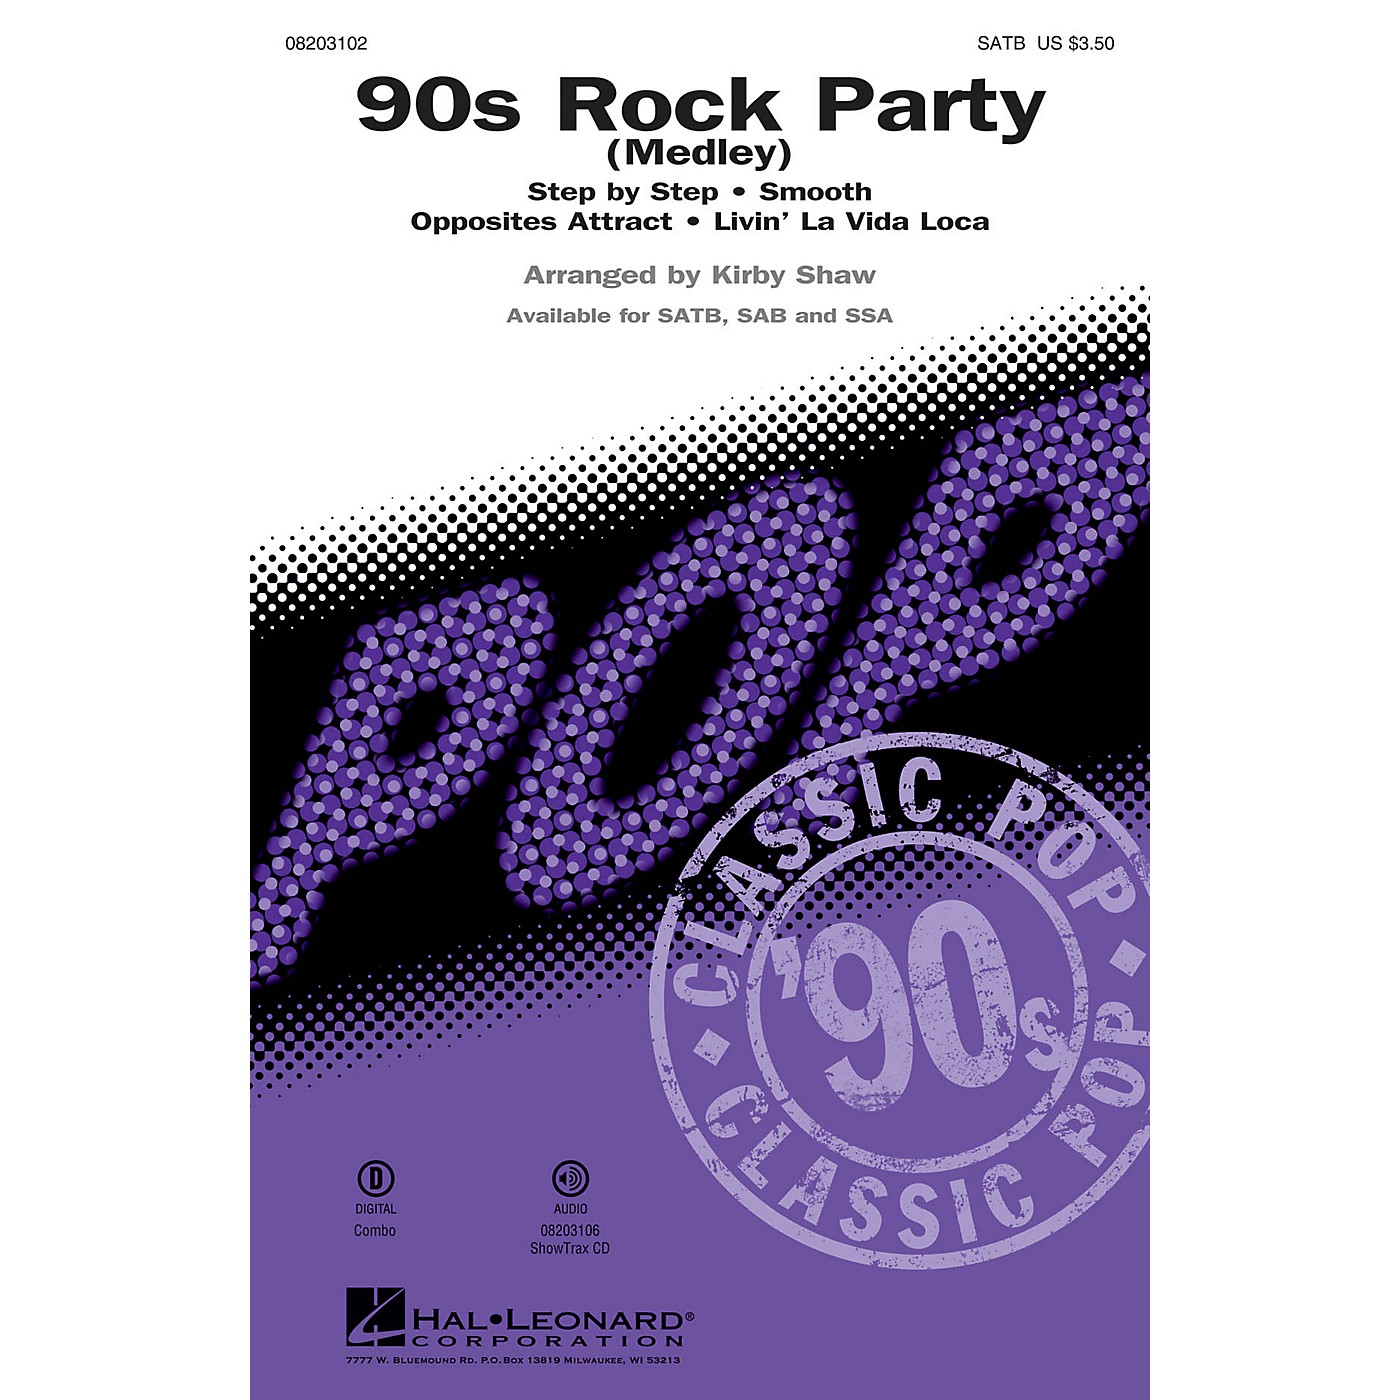 Hal Leonard 90s Rock Party (Medley) SATB arranged by Kirby Shaw thumbnail